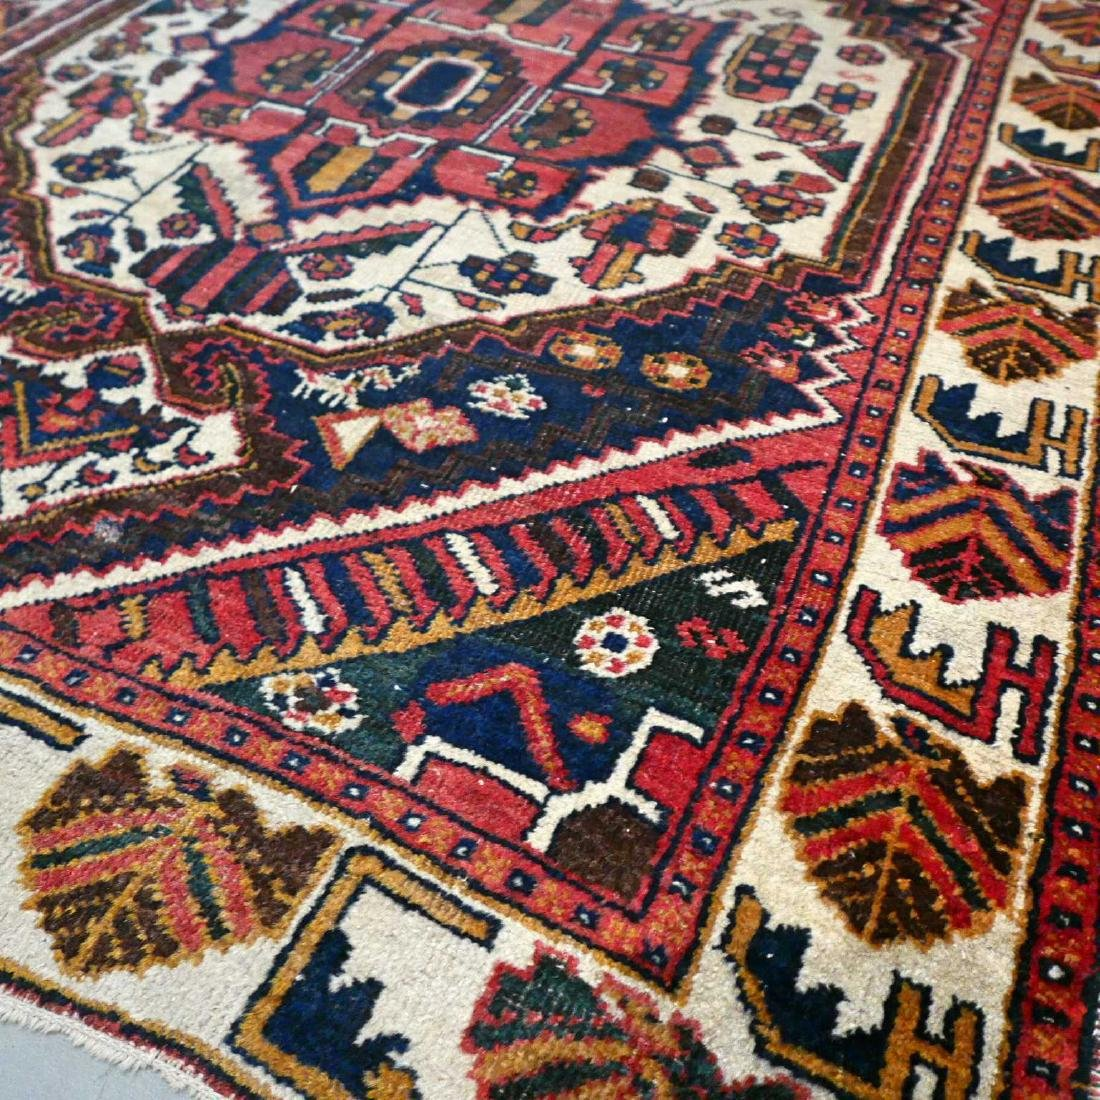 Antique Persian Bakhtiar Wool Hand Knotted Rug 6.3x4.2 - 3